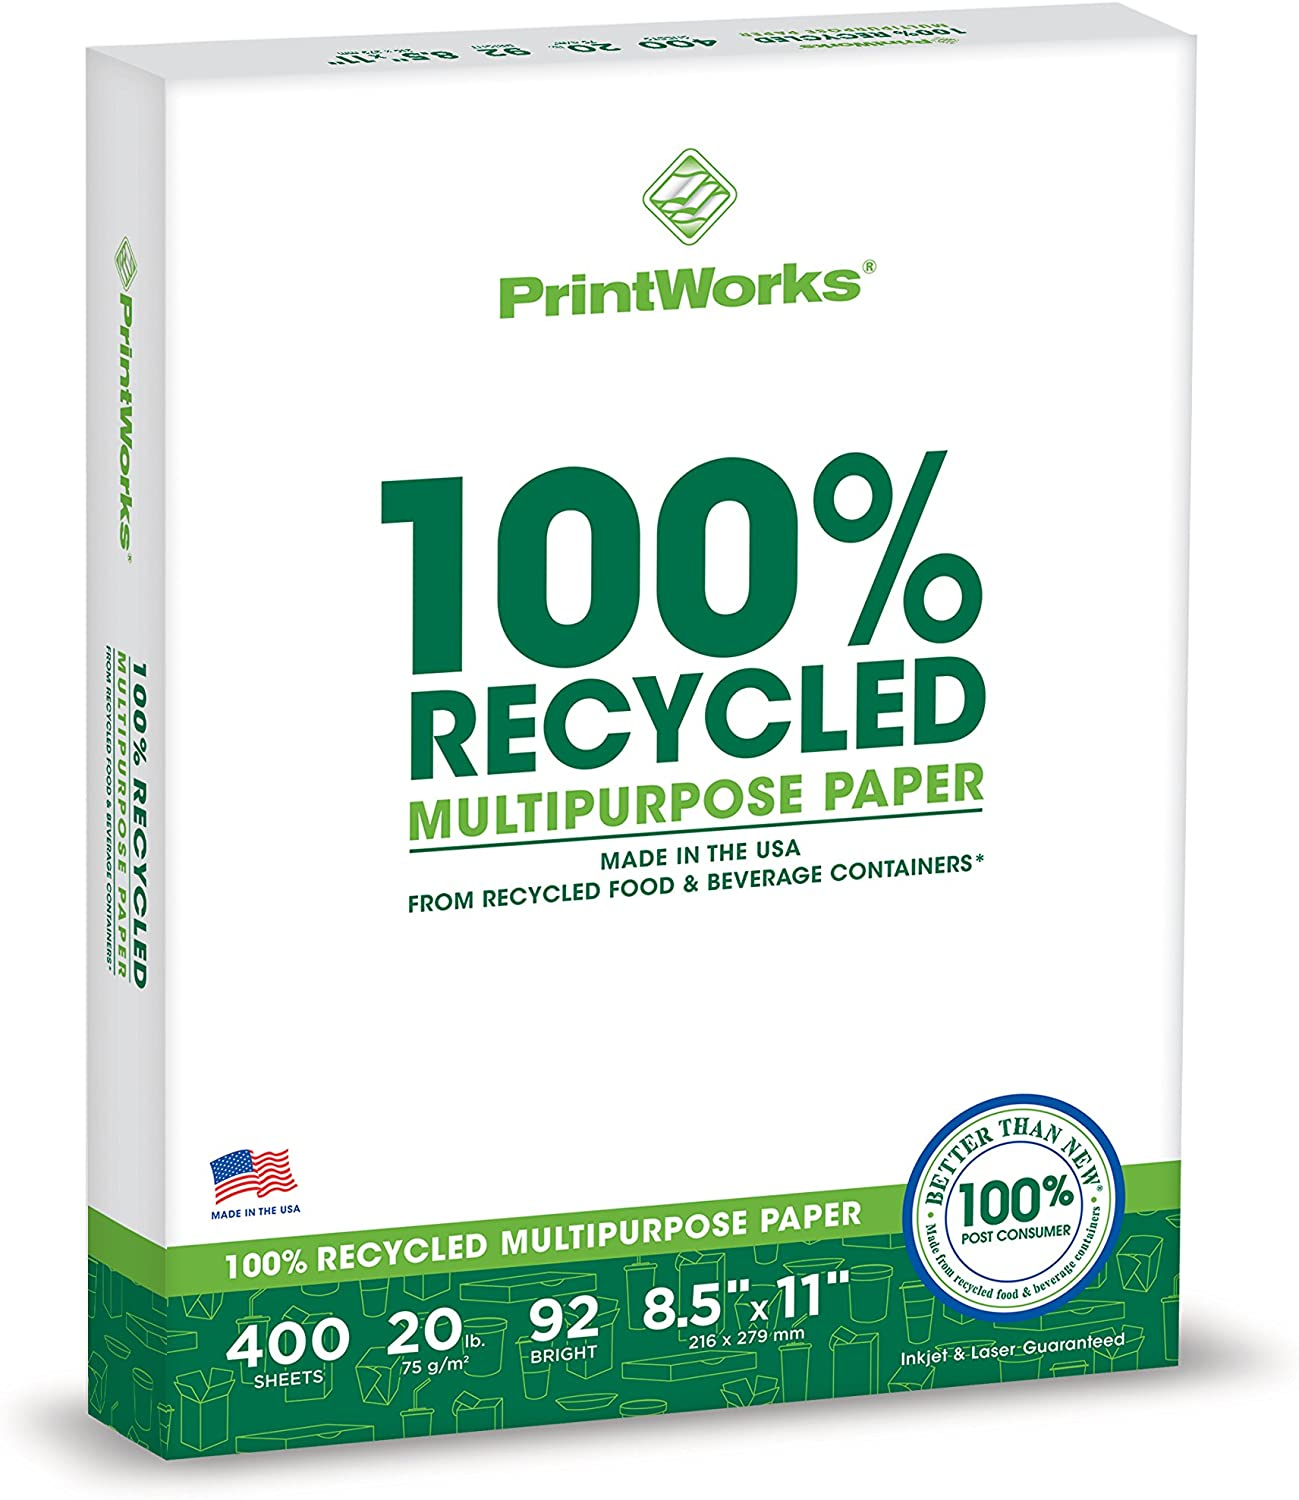 Printworks 100 Percent Recycled Multipurpose Paper, 20 Pound, 92 Bright, 8.5 x 11 Inches, 400 sheets (00018), White : Printer Paper : Office Products